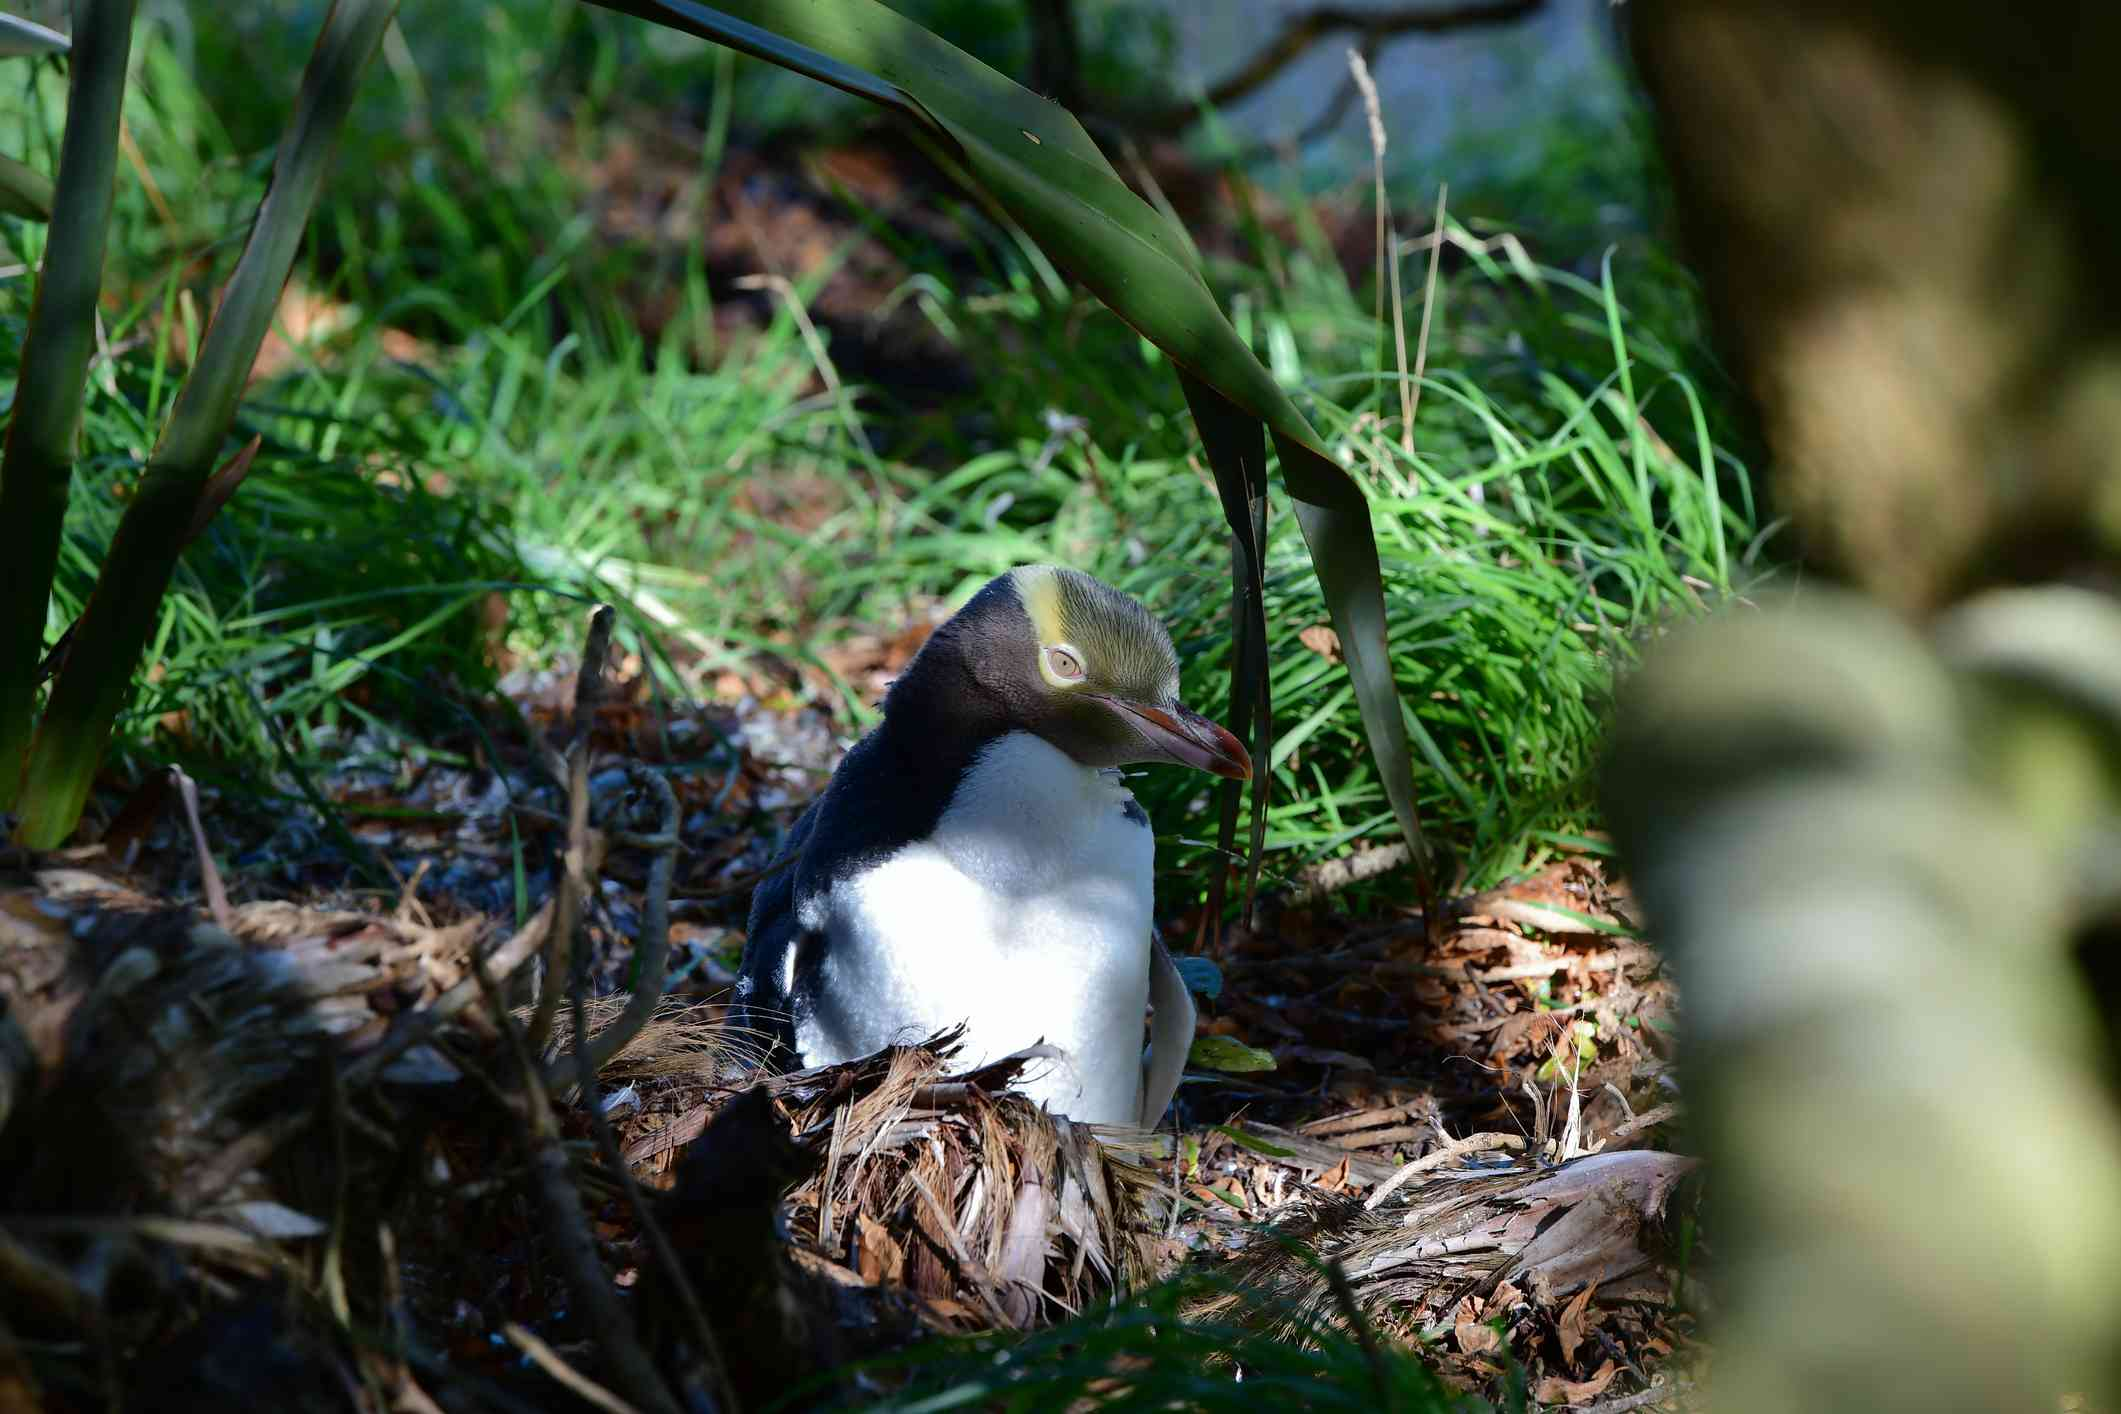 A penguin with yellow head feathers sits on a nest in a forest